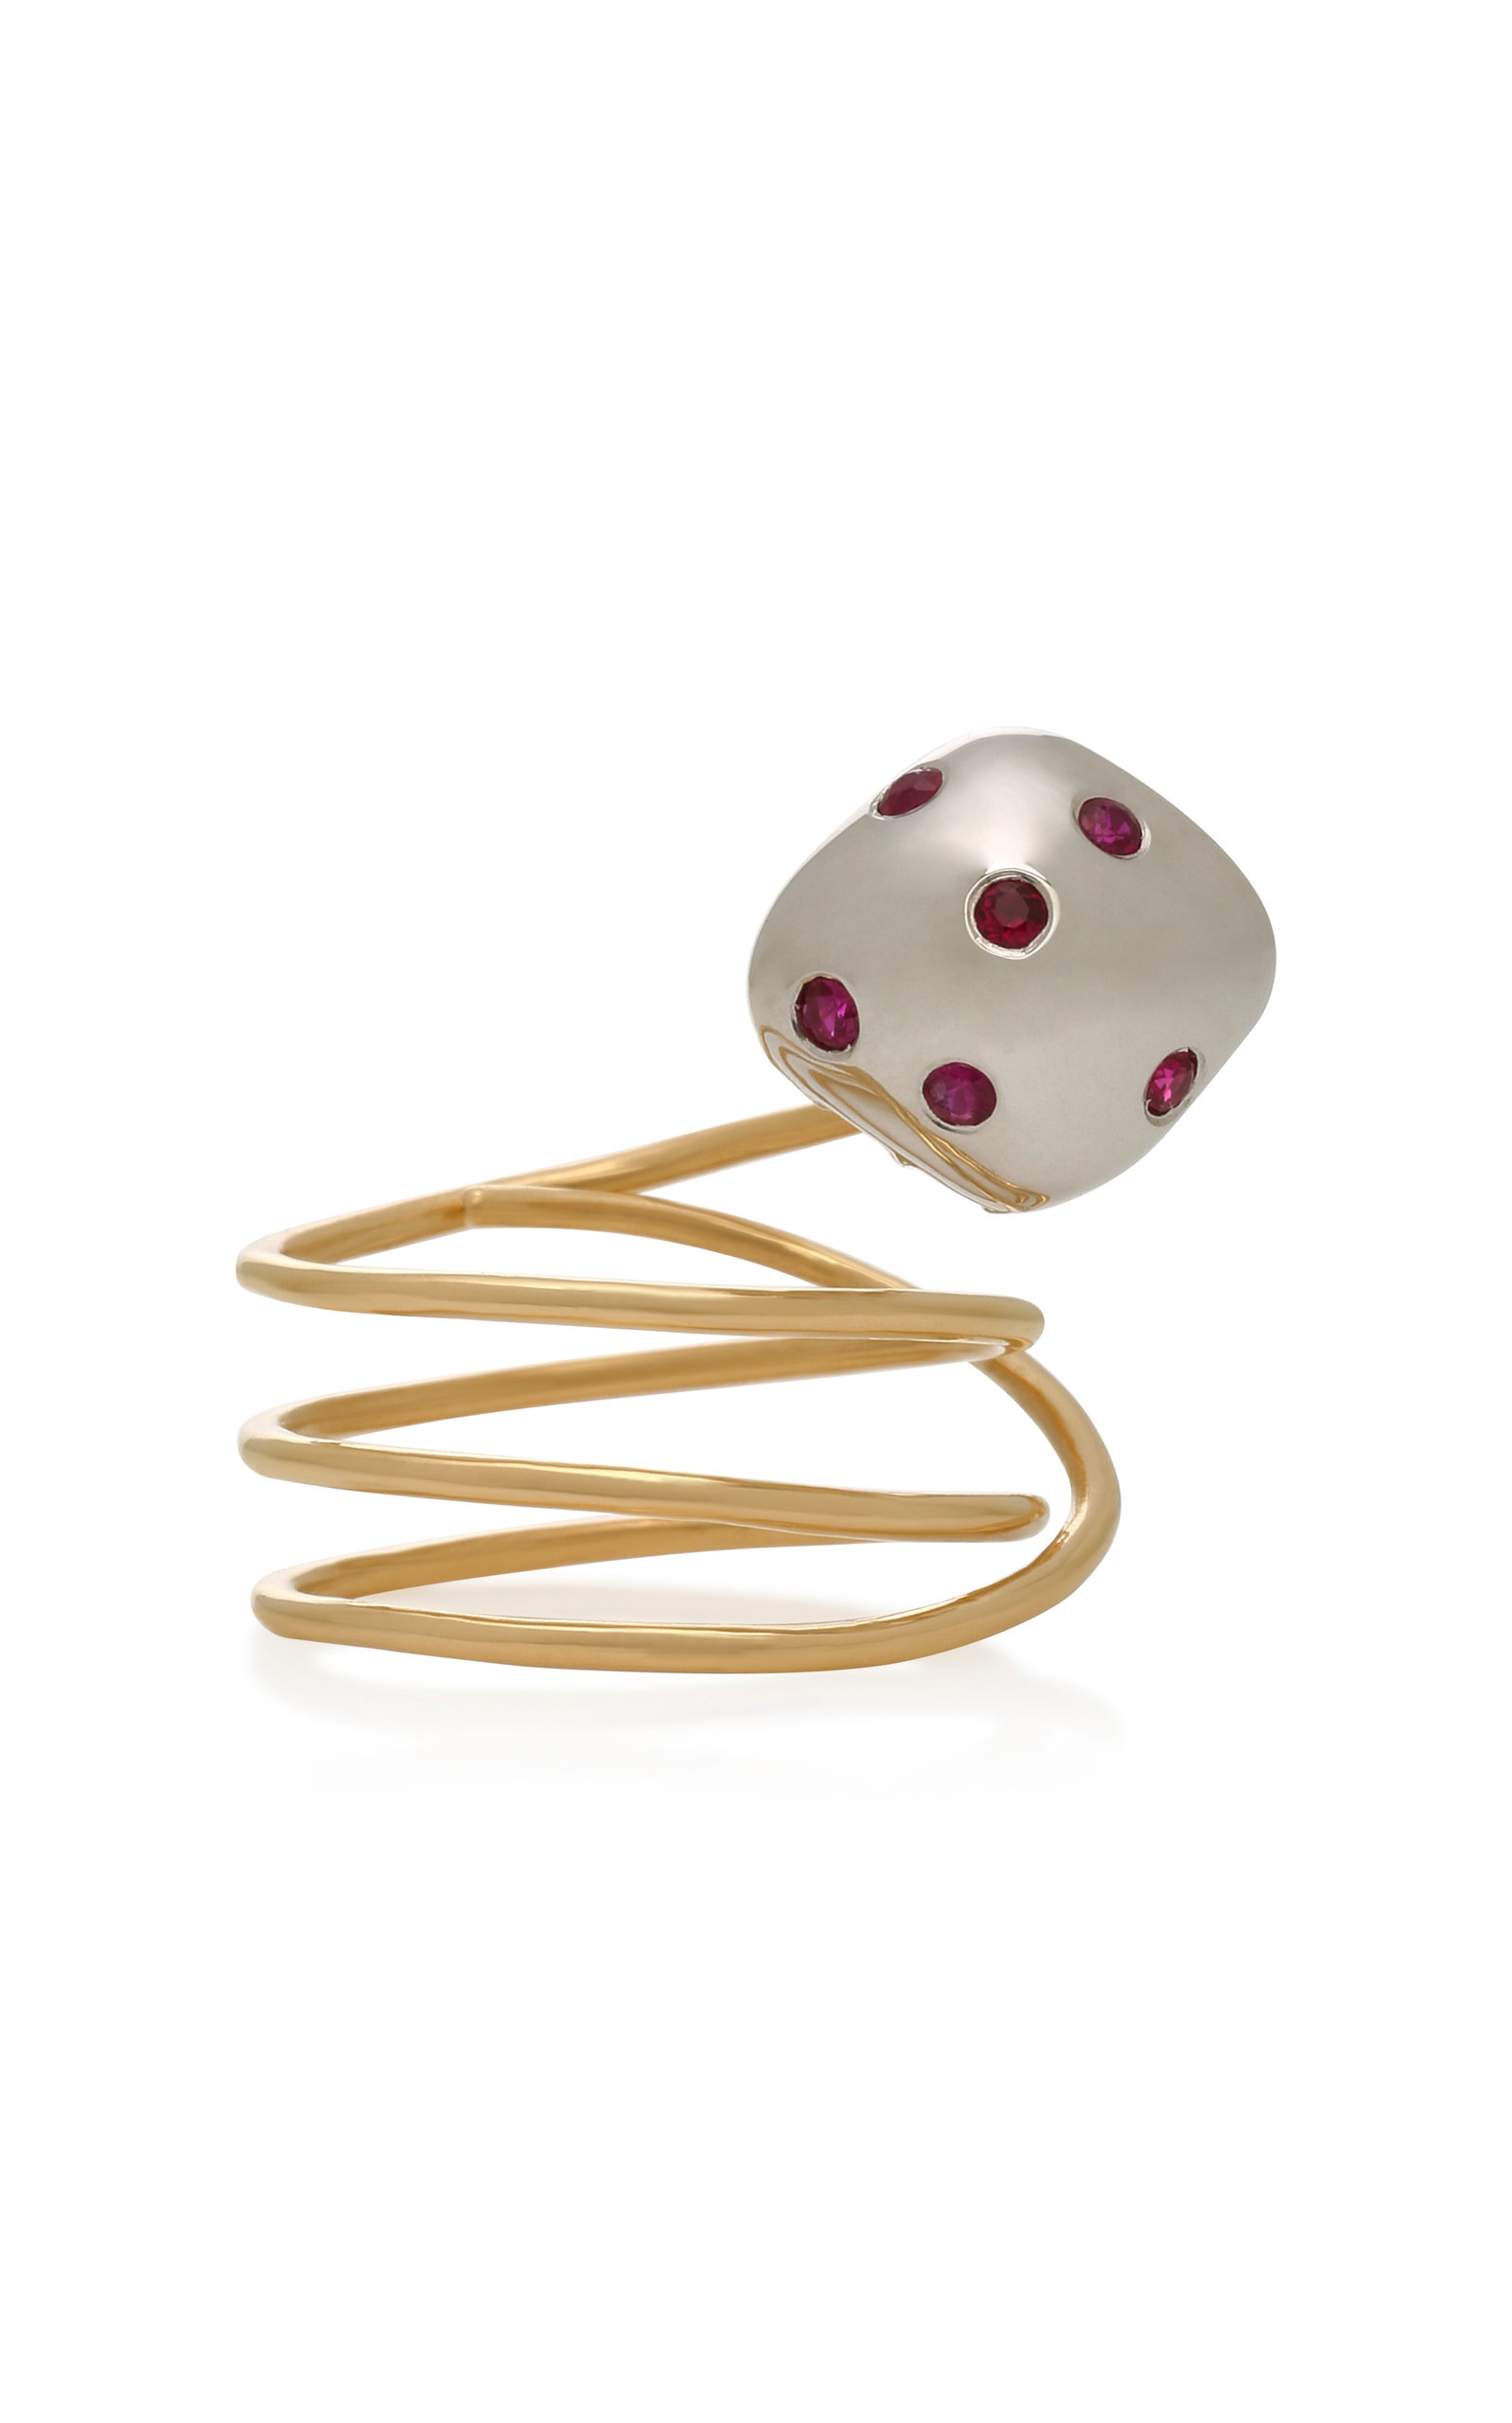 DONNA HOURANI MUSHROOM 18K GOLD AND RUBY RING